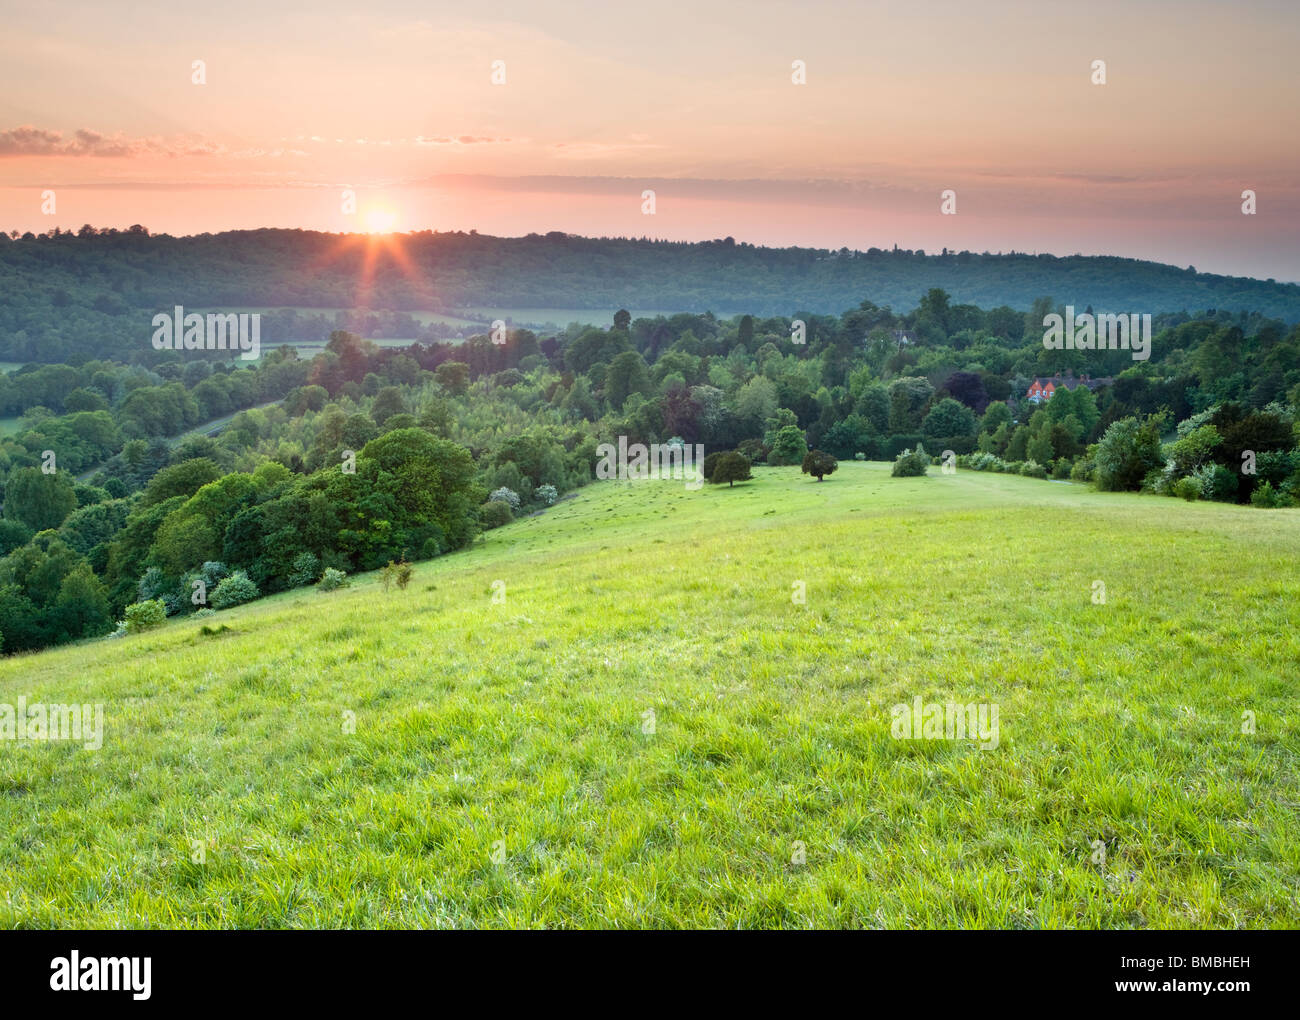 Sonnenuntergang am Box Hill, North Downs, Dorking, Surrey, UK Stockbild